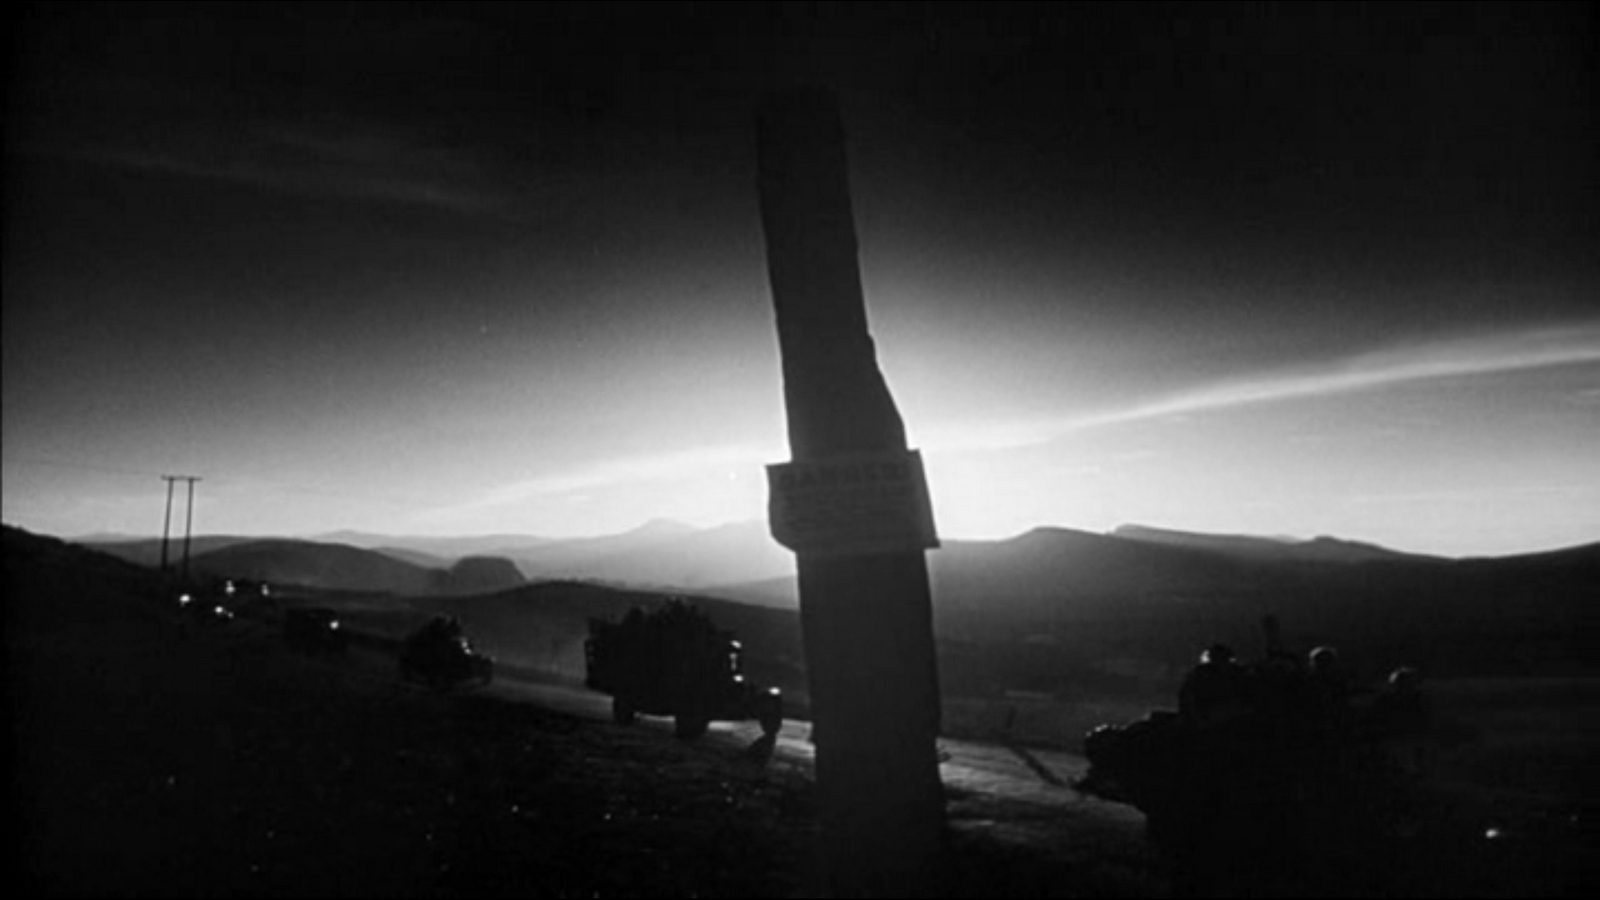 the underlying themes and current relevance of the grapes of wrath a drama film by john ford Yet out of their suffering steinbeck created a drama that more through john chancer's reading than through john ford's it the grapes of wrath by john.